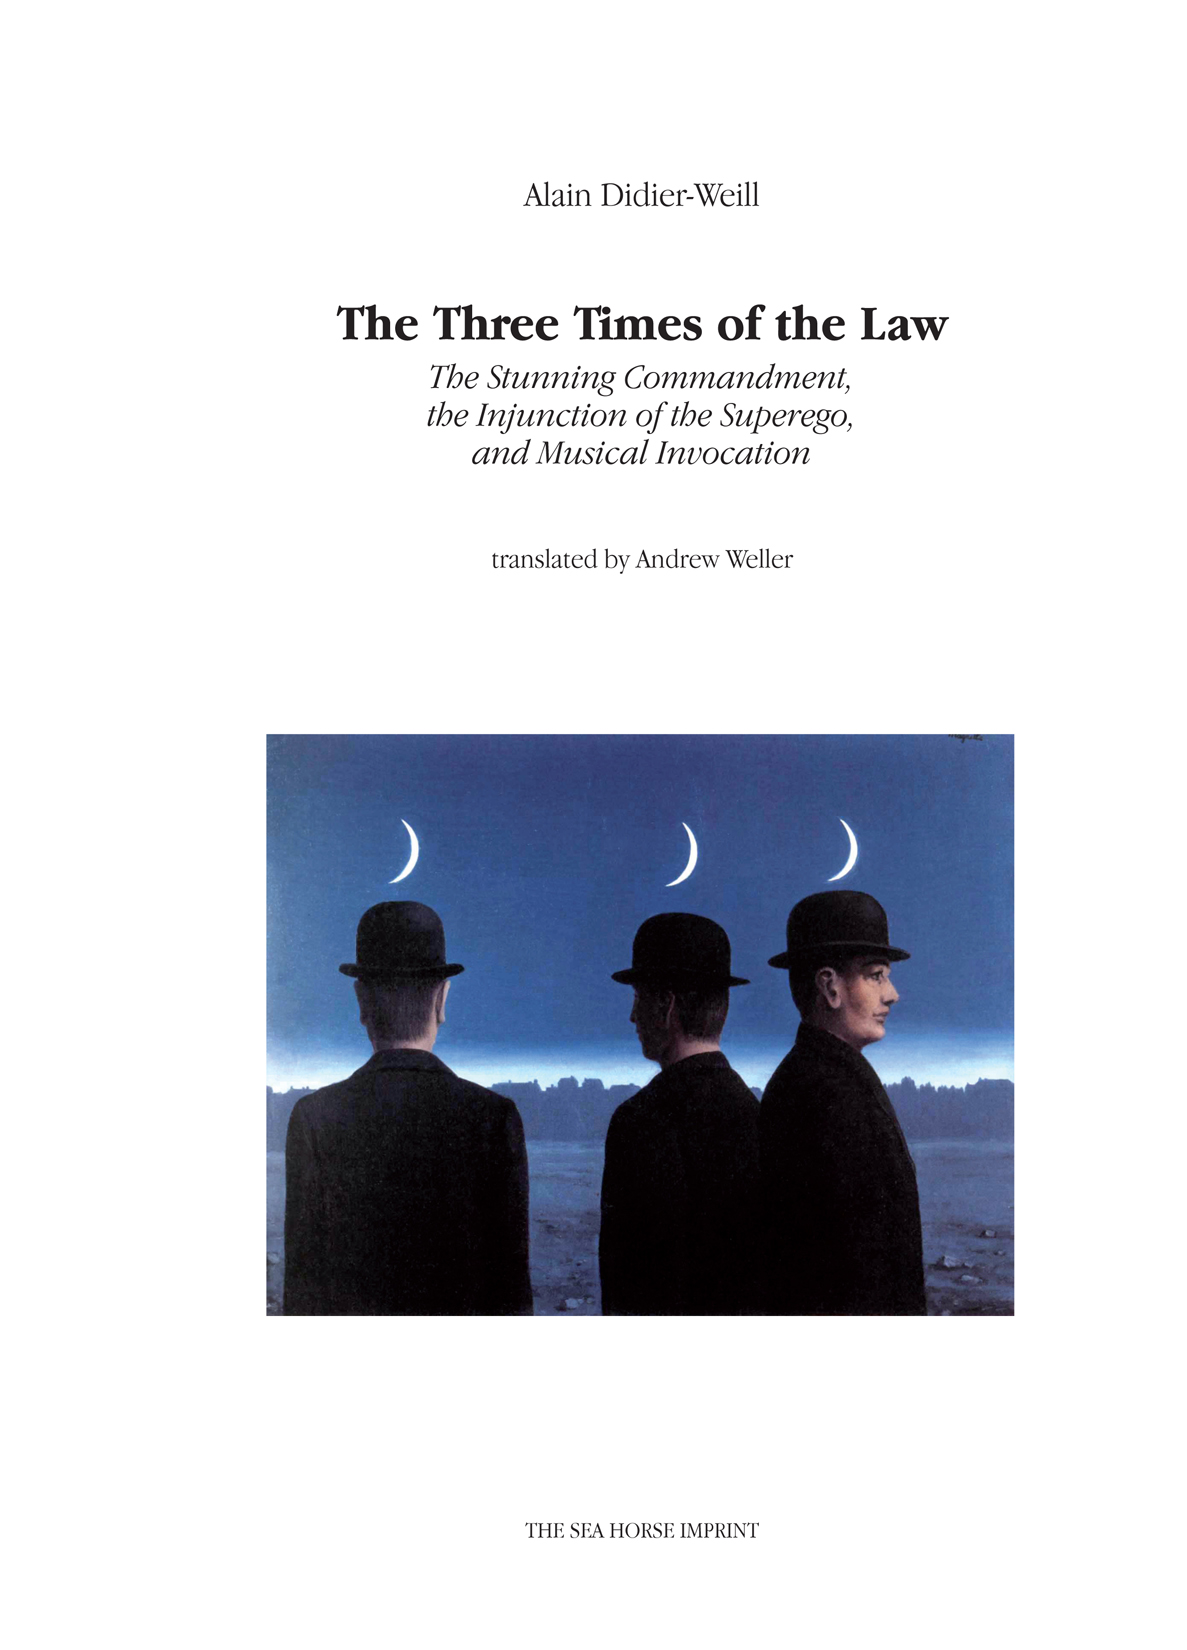 The Three Times of the Law Cover.jpg